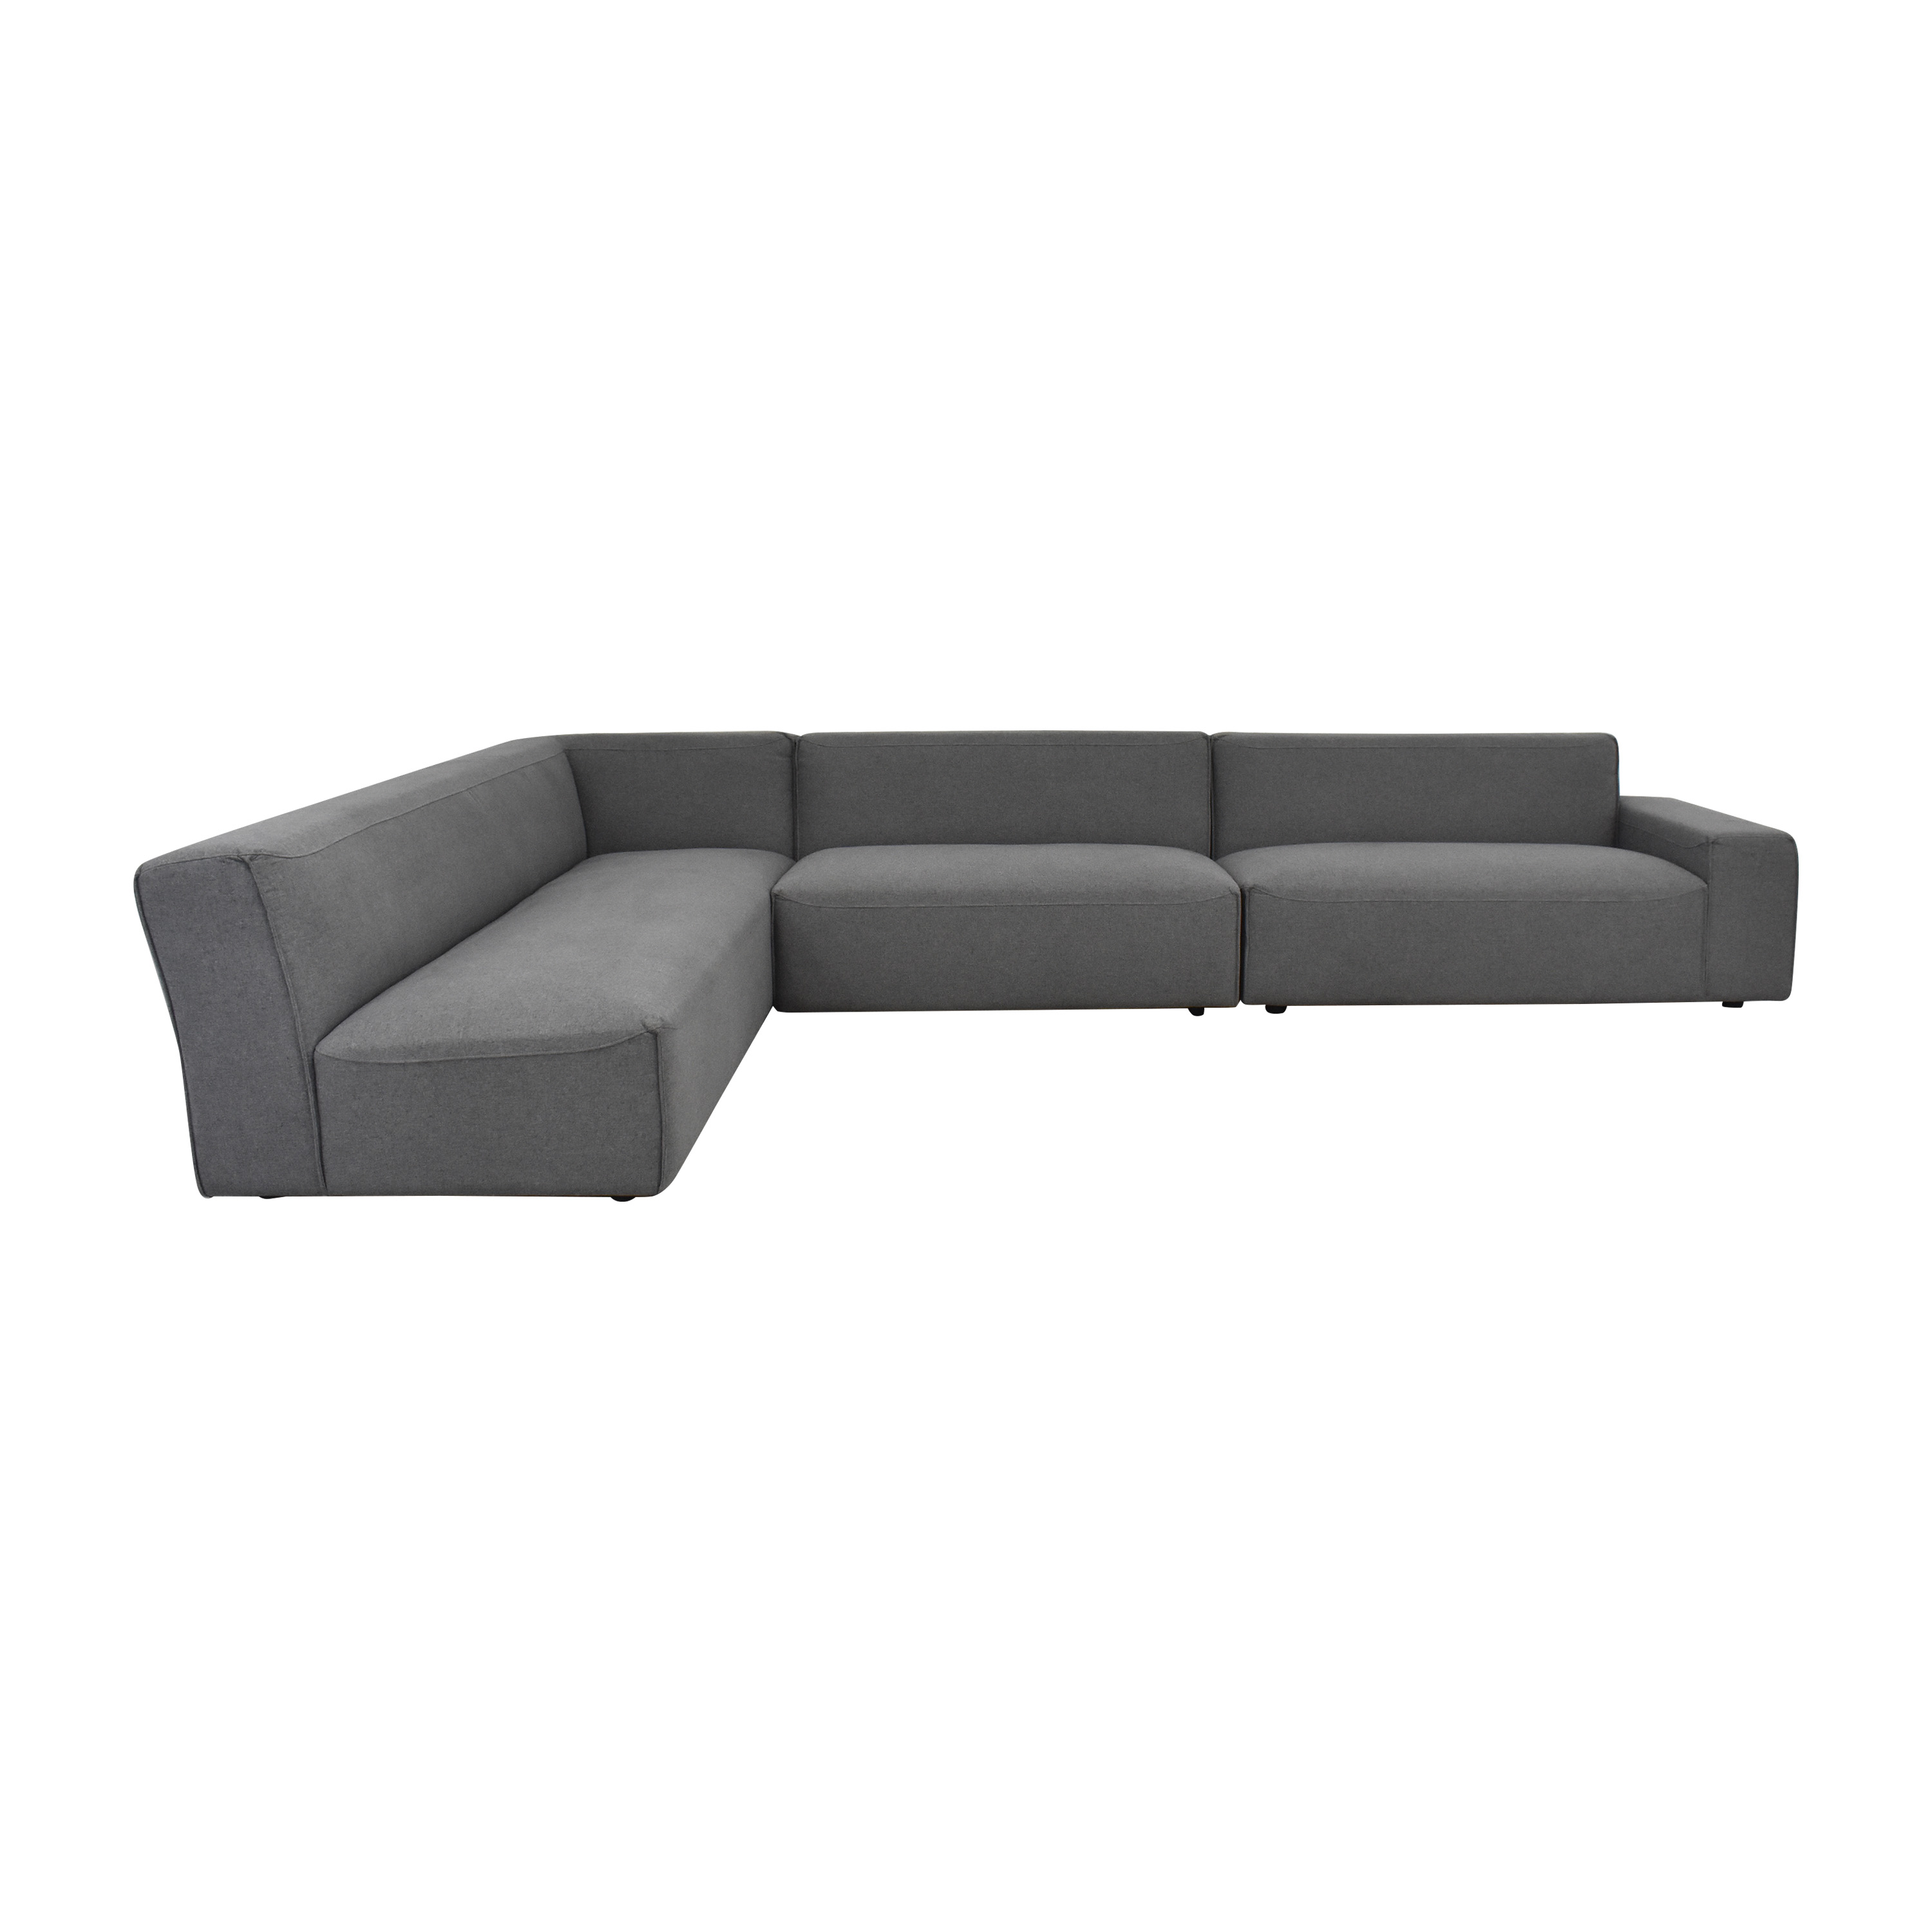 Interior Define Interior Define Crawford Sectional Sofa grey